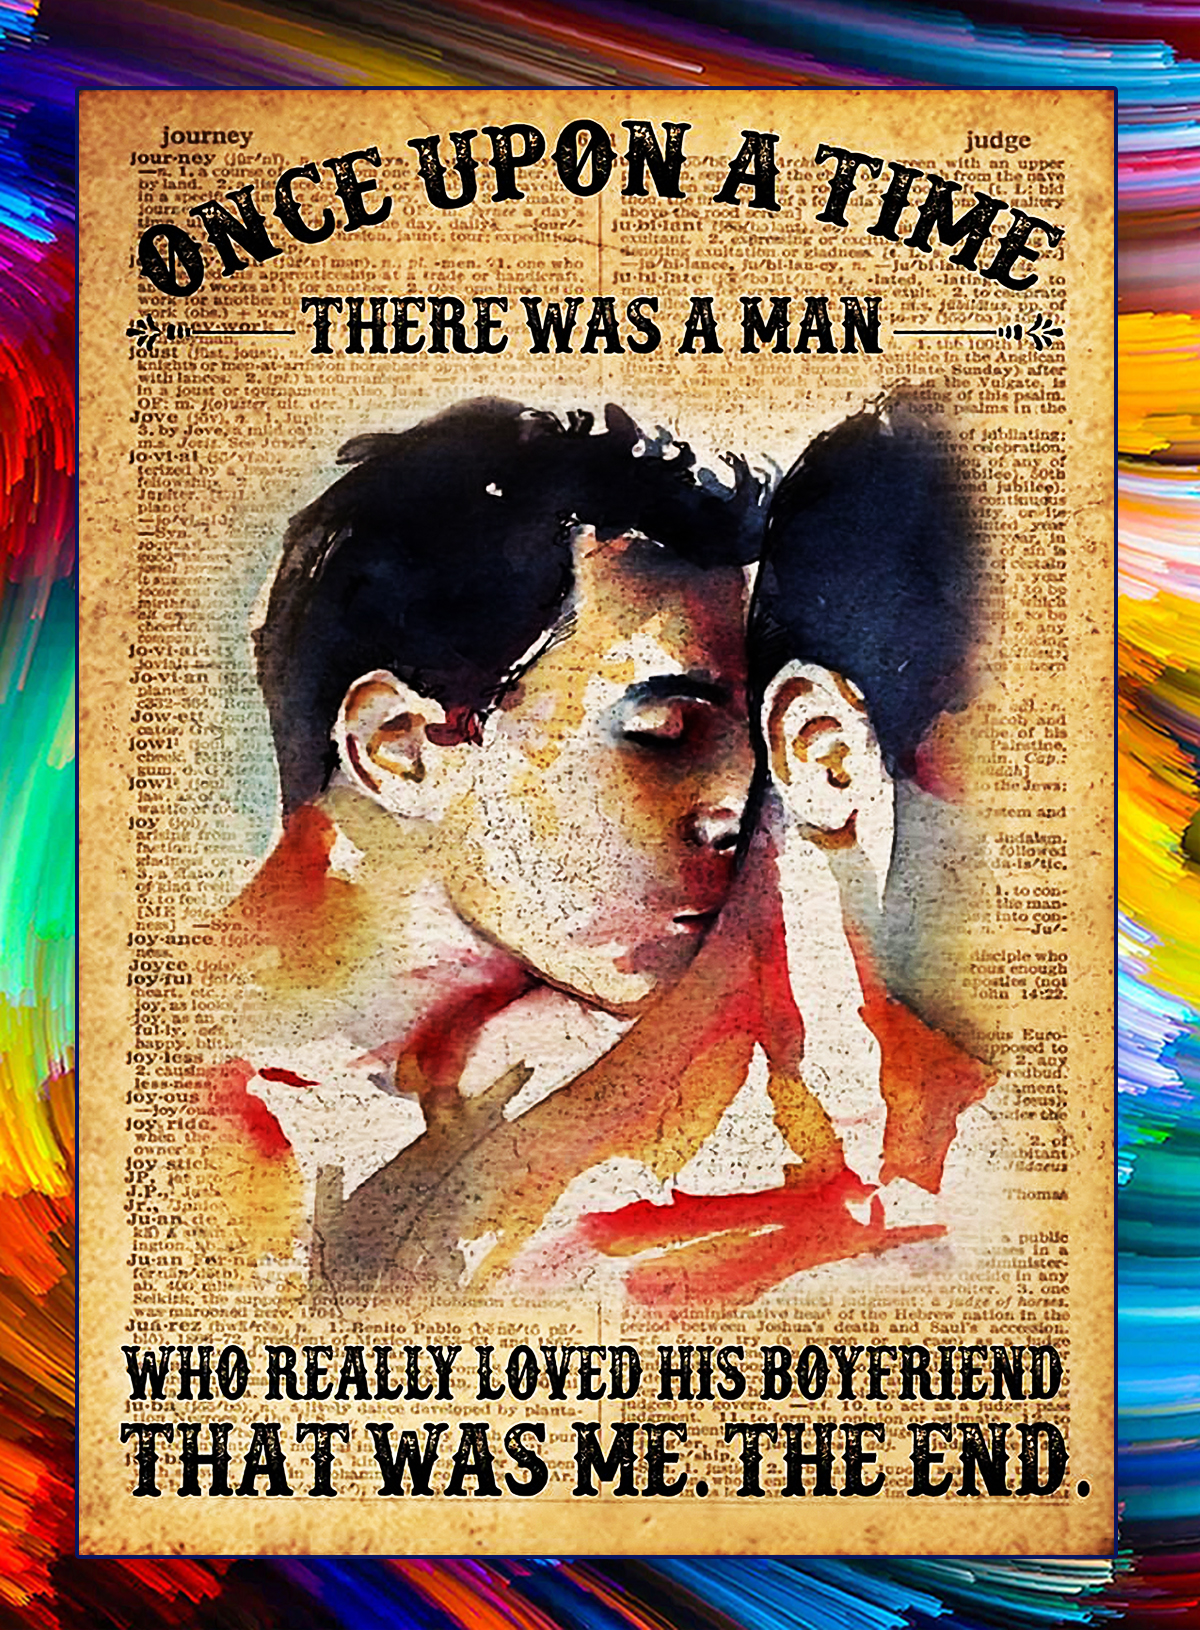 There was a man who really loved his boyfriend lgbt pride poster